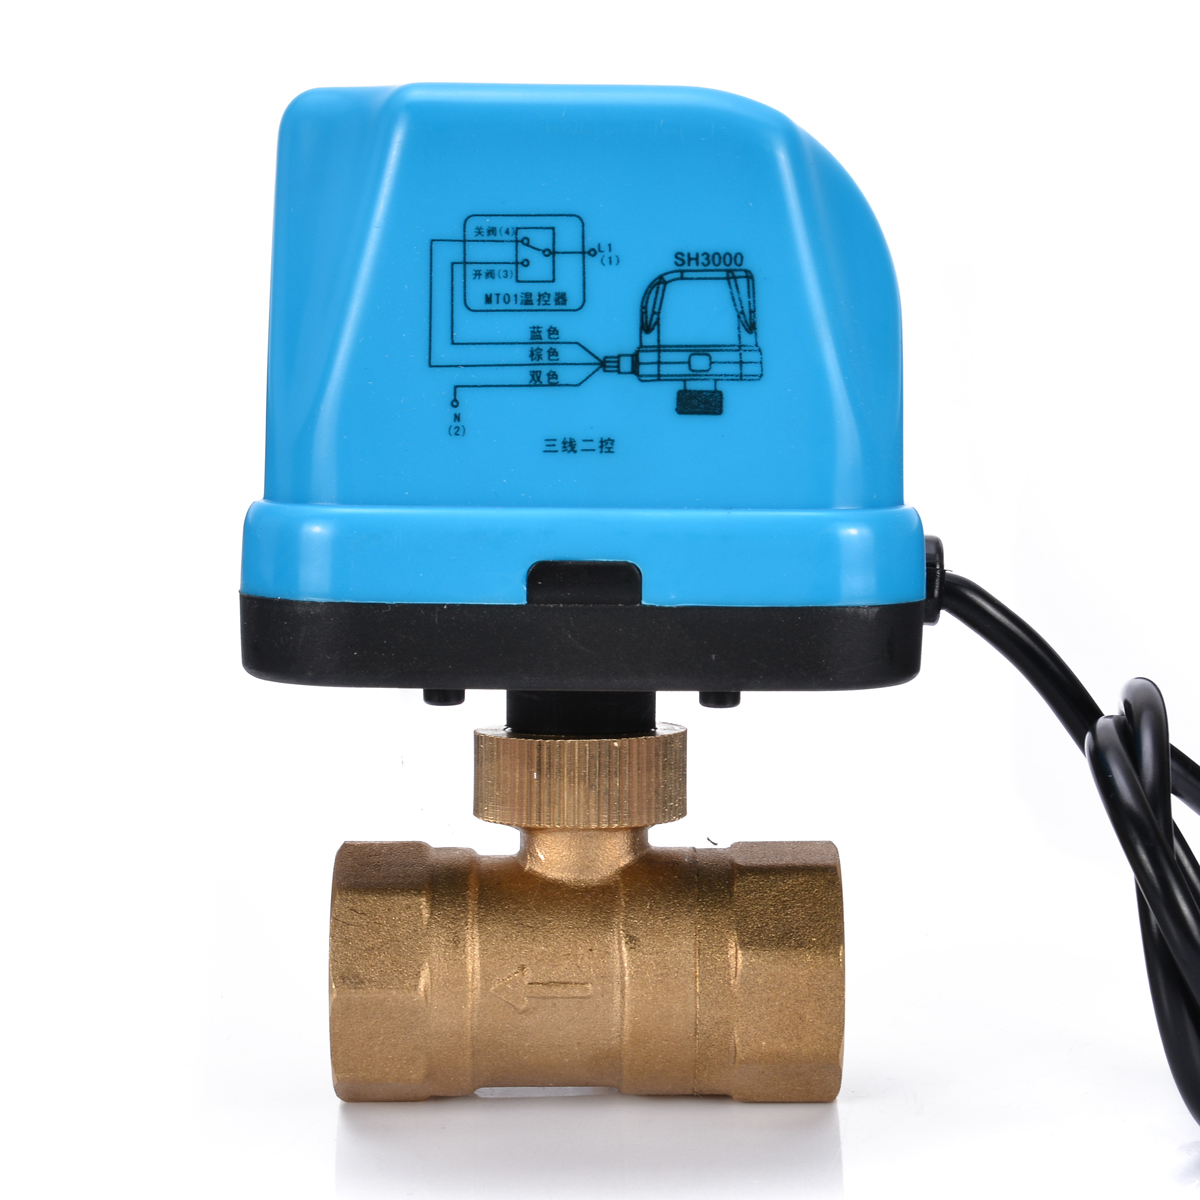 """1PC Brass Electrical Ball Valve G3/4"""" DN20 3/4 Inch 2 Way 220V Control Electric Motorized Ball Valves With LED Light Mayitr"""